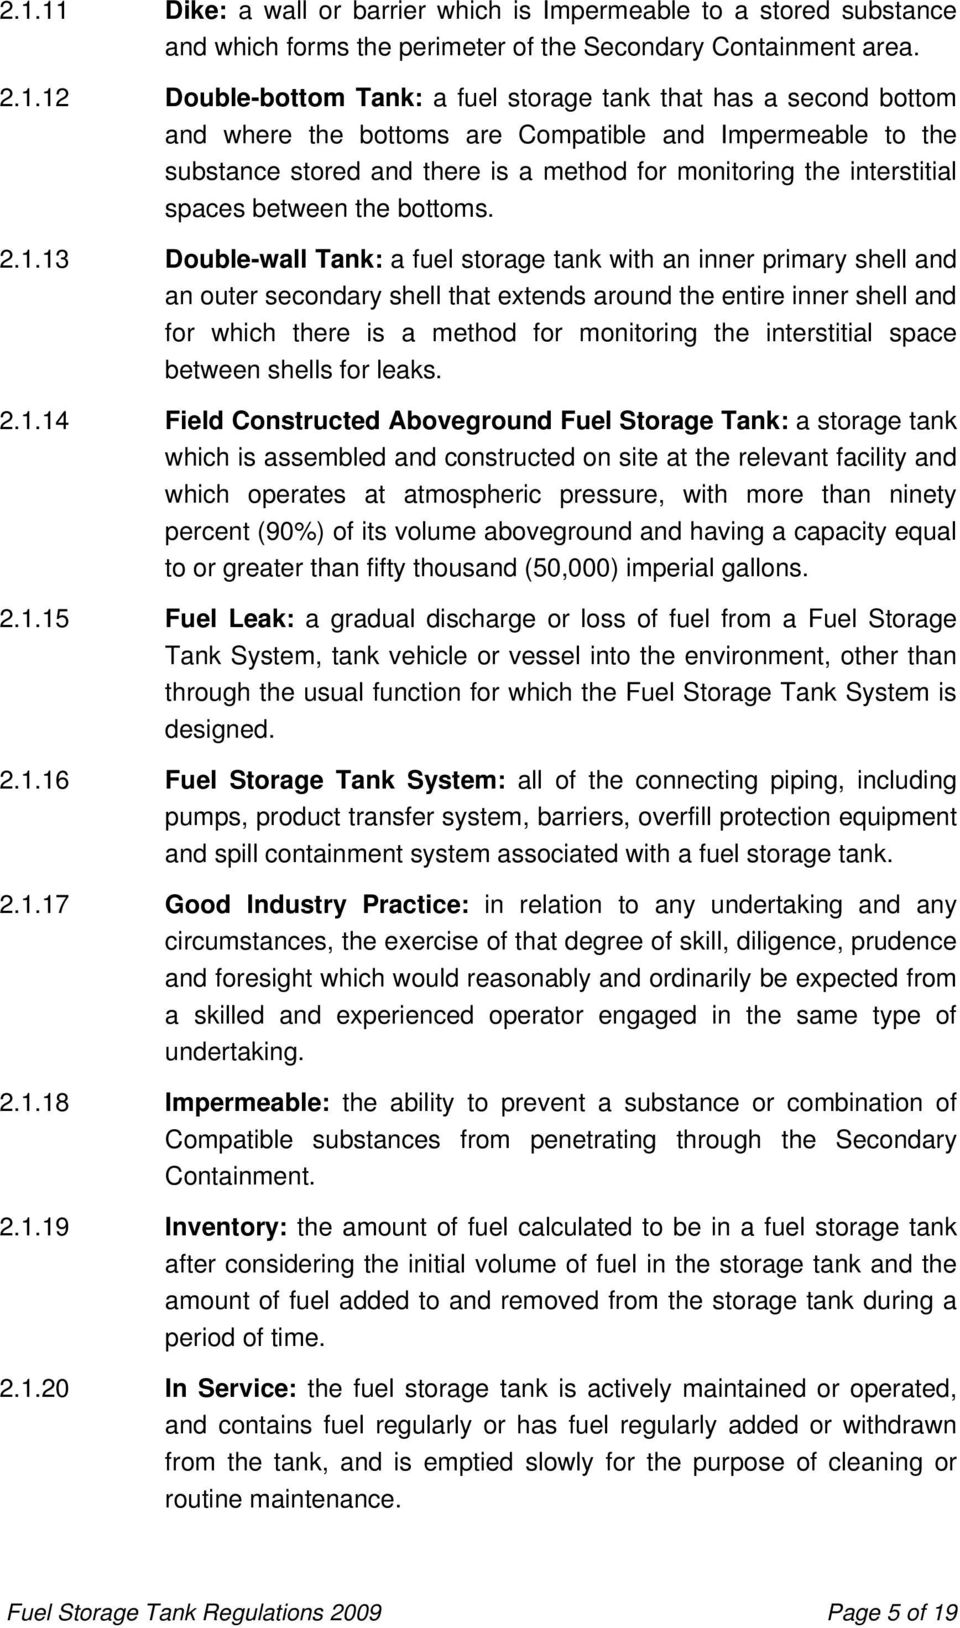 13 Double-wall Tank: a fuel storage tank with an inner primary shell and an outer secondary shell that extends around the entire inner shell and for which there is a method for monitoring the